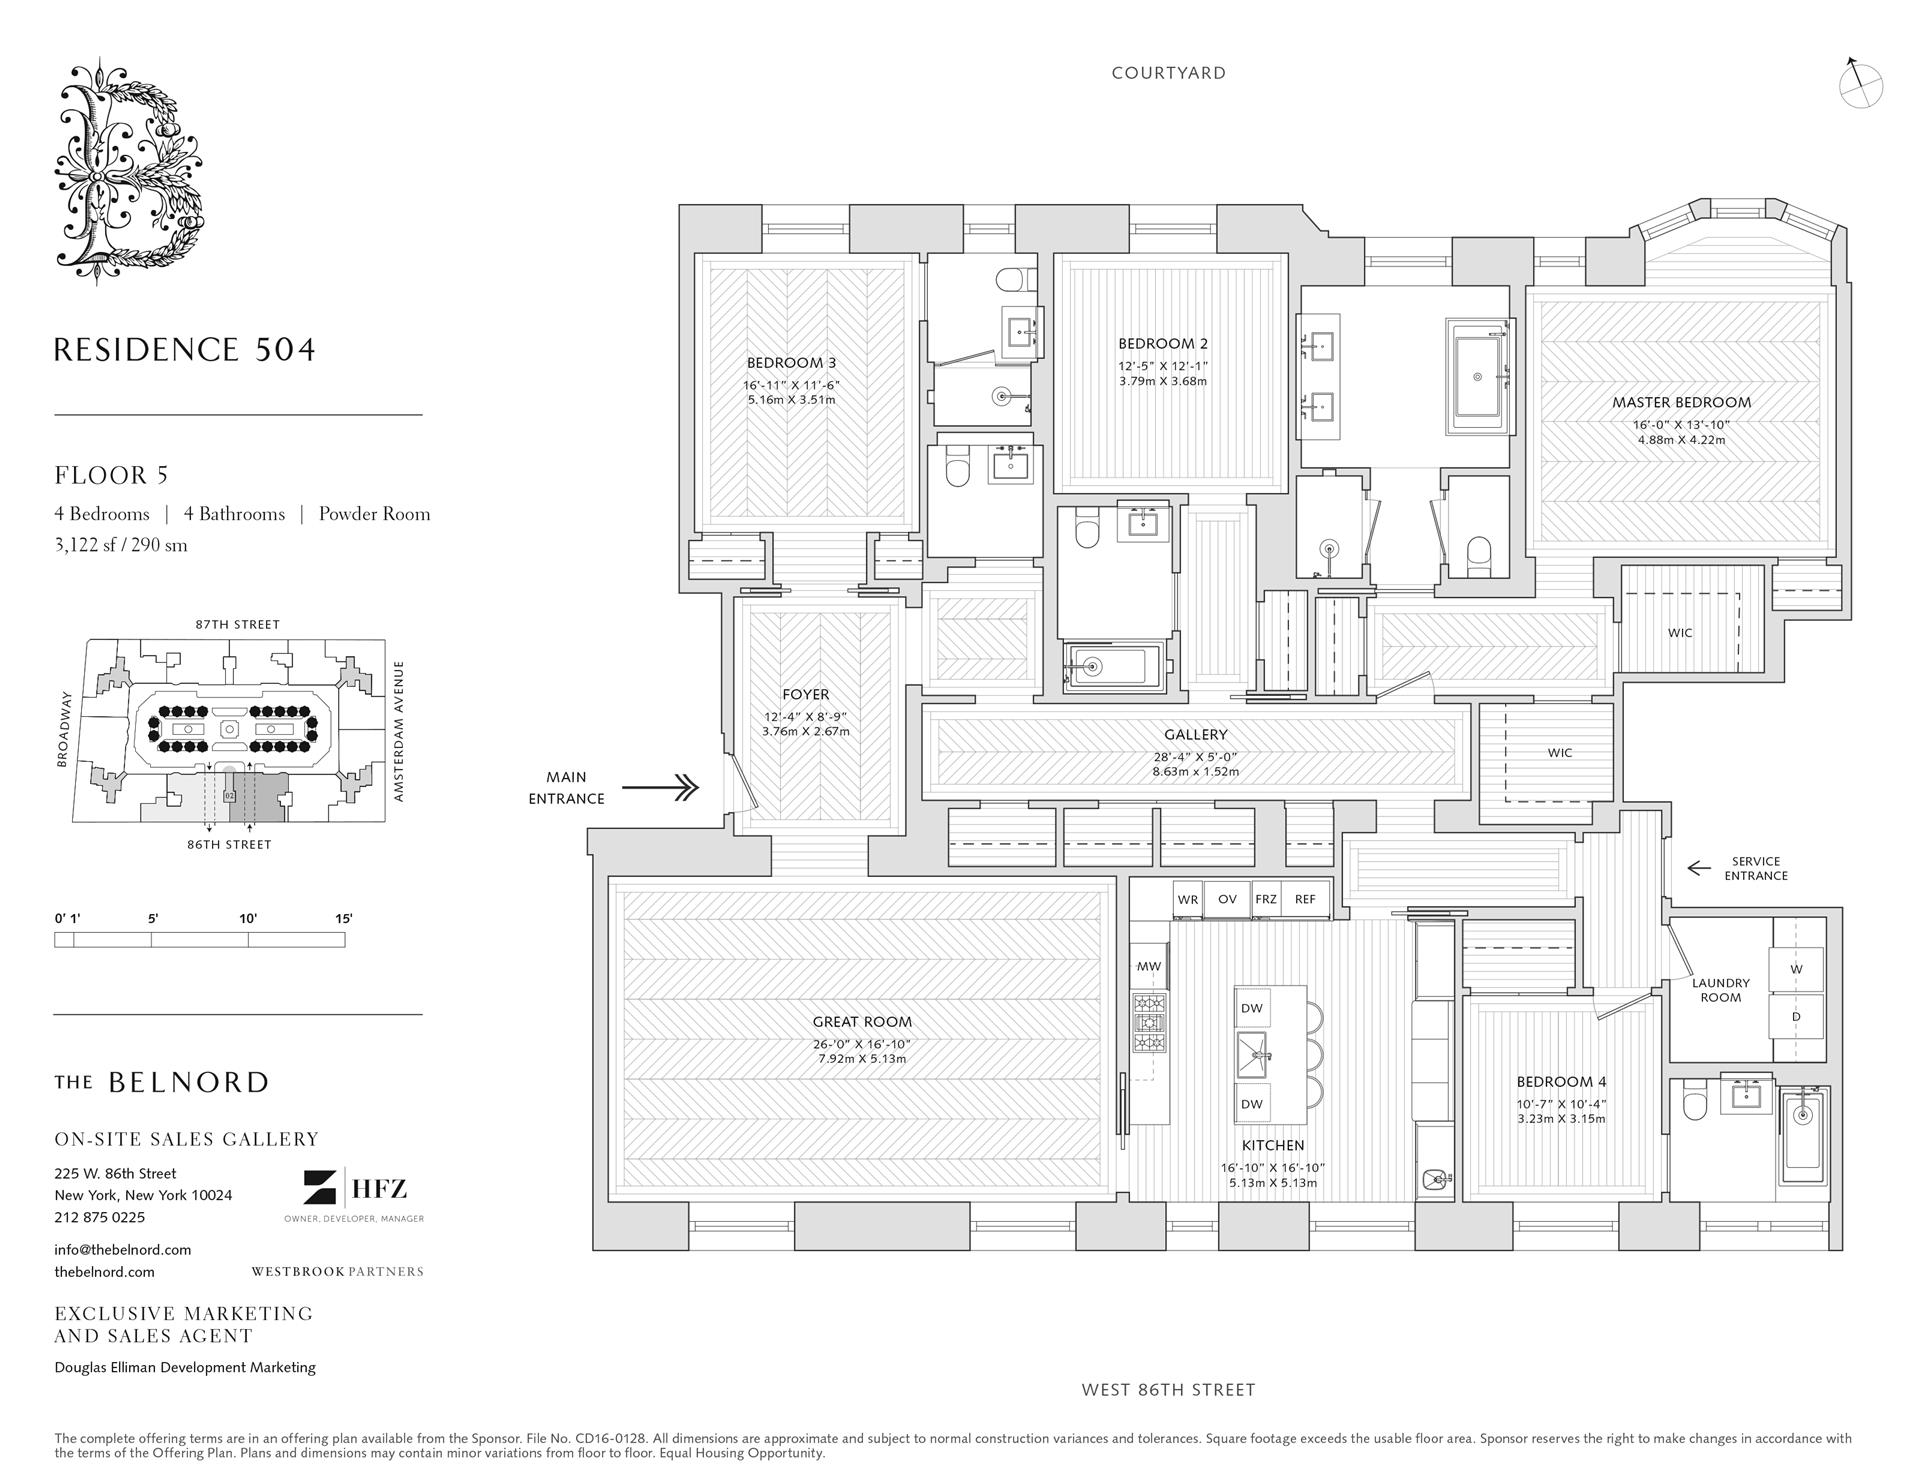 Floor plan of The Belnord, 225 West 86th St, 504 - Upper West Side, New York